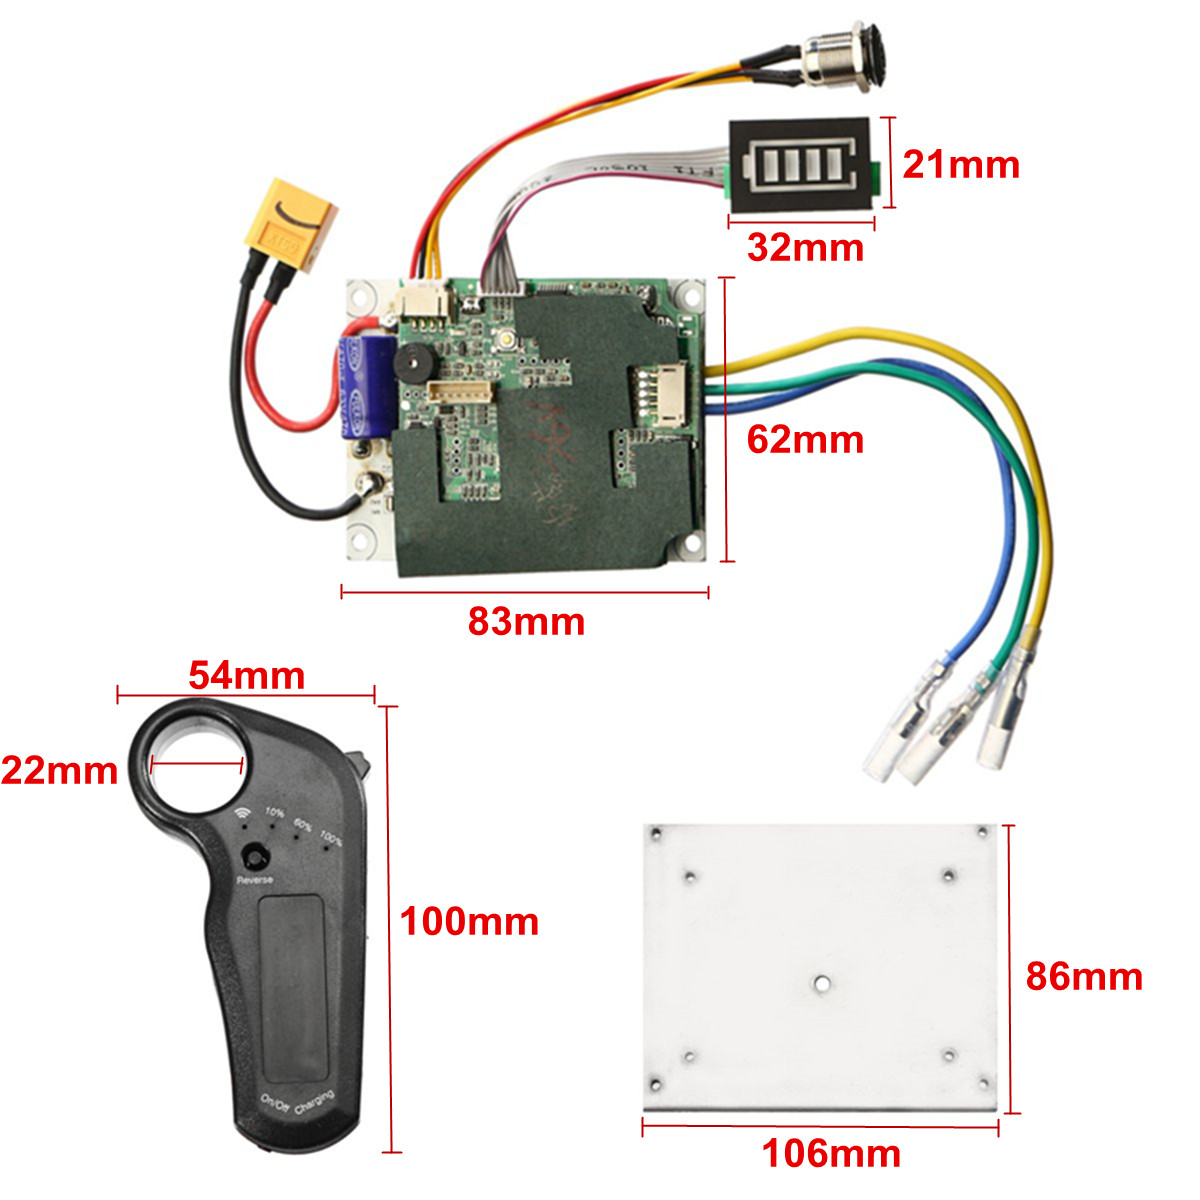 24/36V Single Belt Motor Electric Skateboard Controller Longboard ESC Substitute Parts Scooter Mainboard Instrument Tools 33